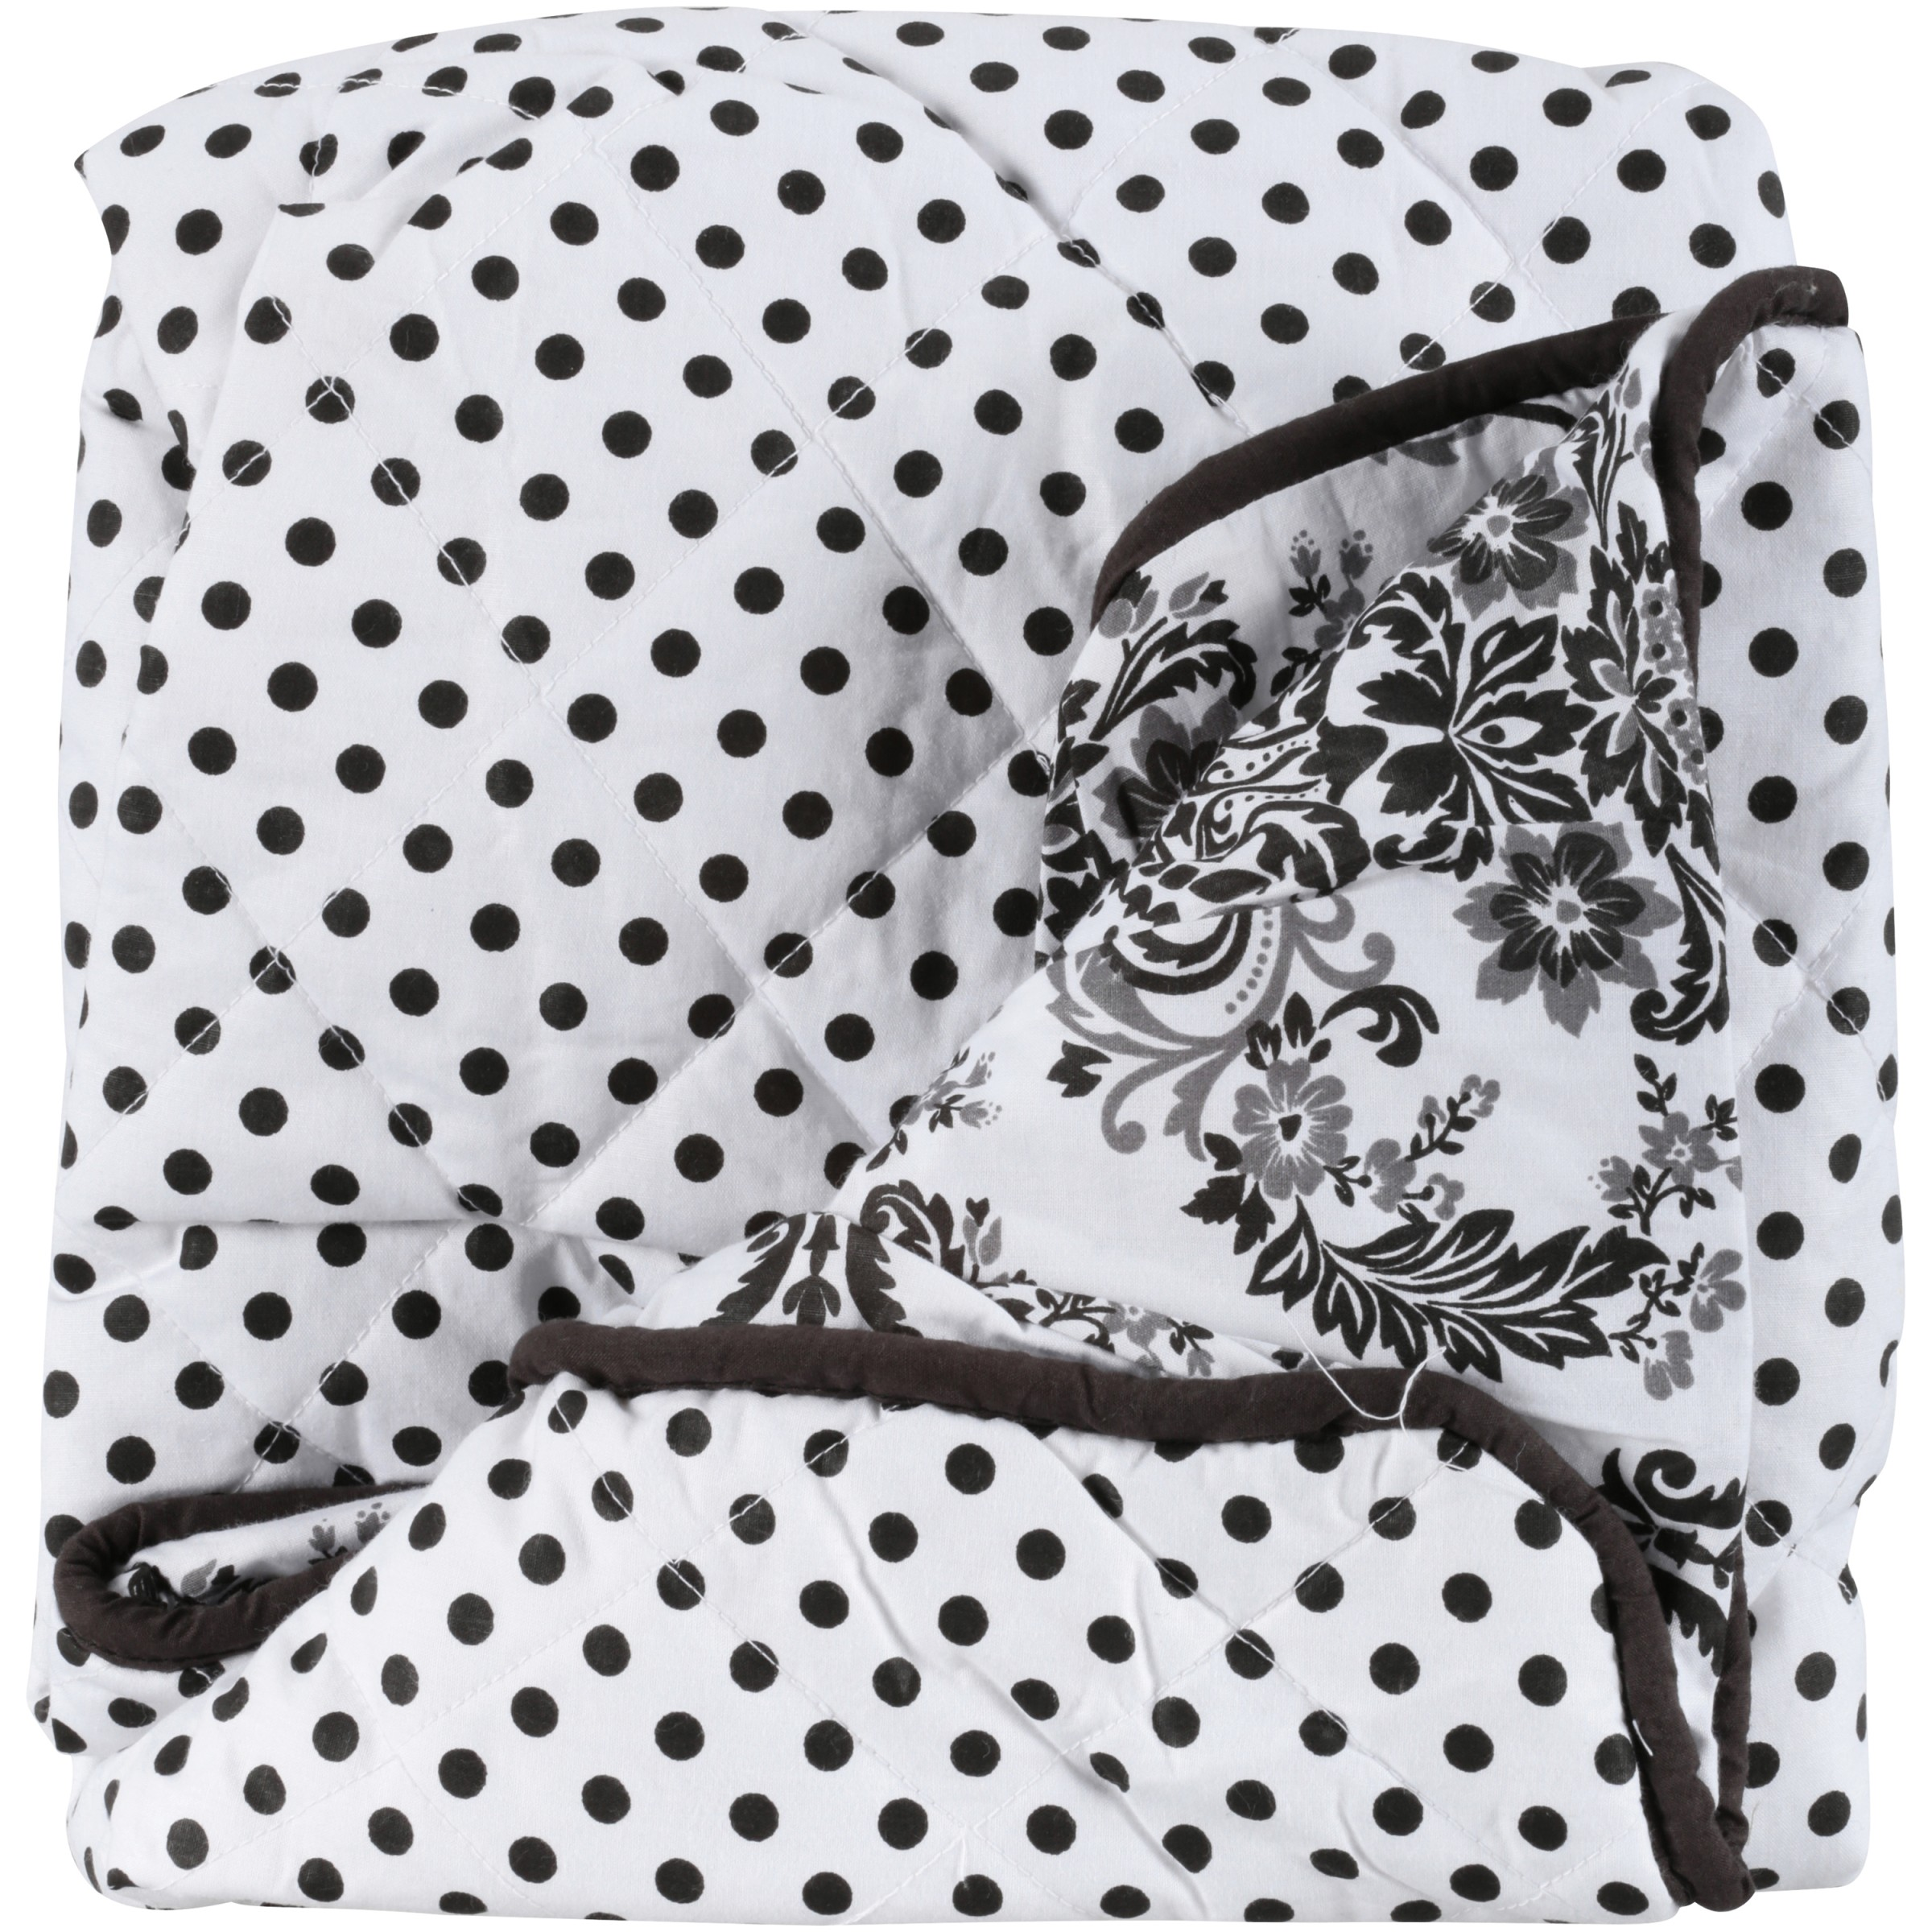 Bacati Classic Damask White/Black Pin Dots Changing Pad Cover